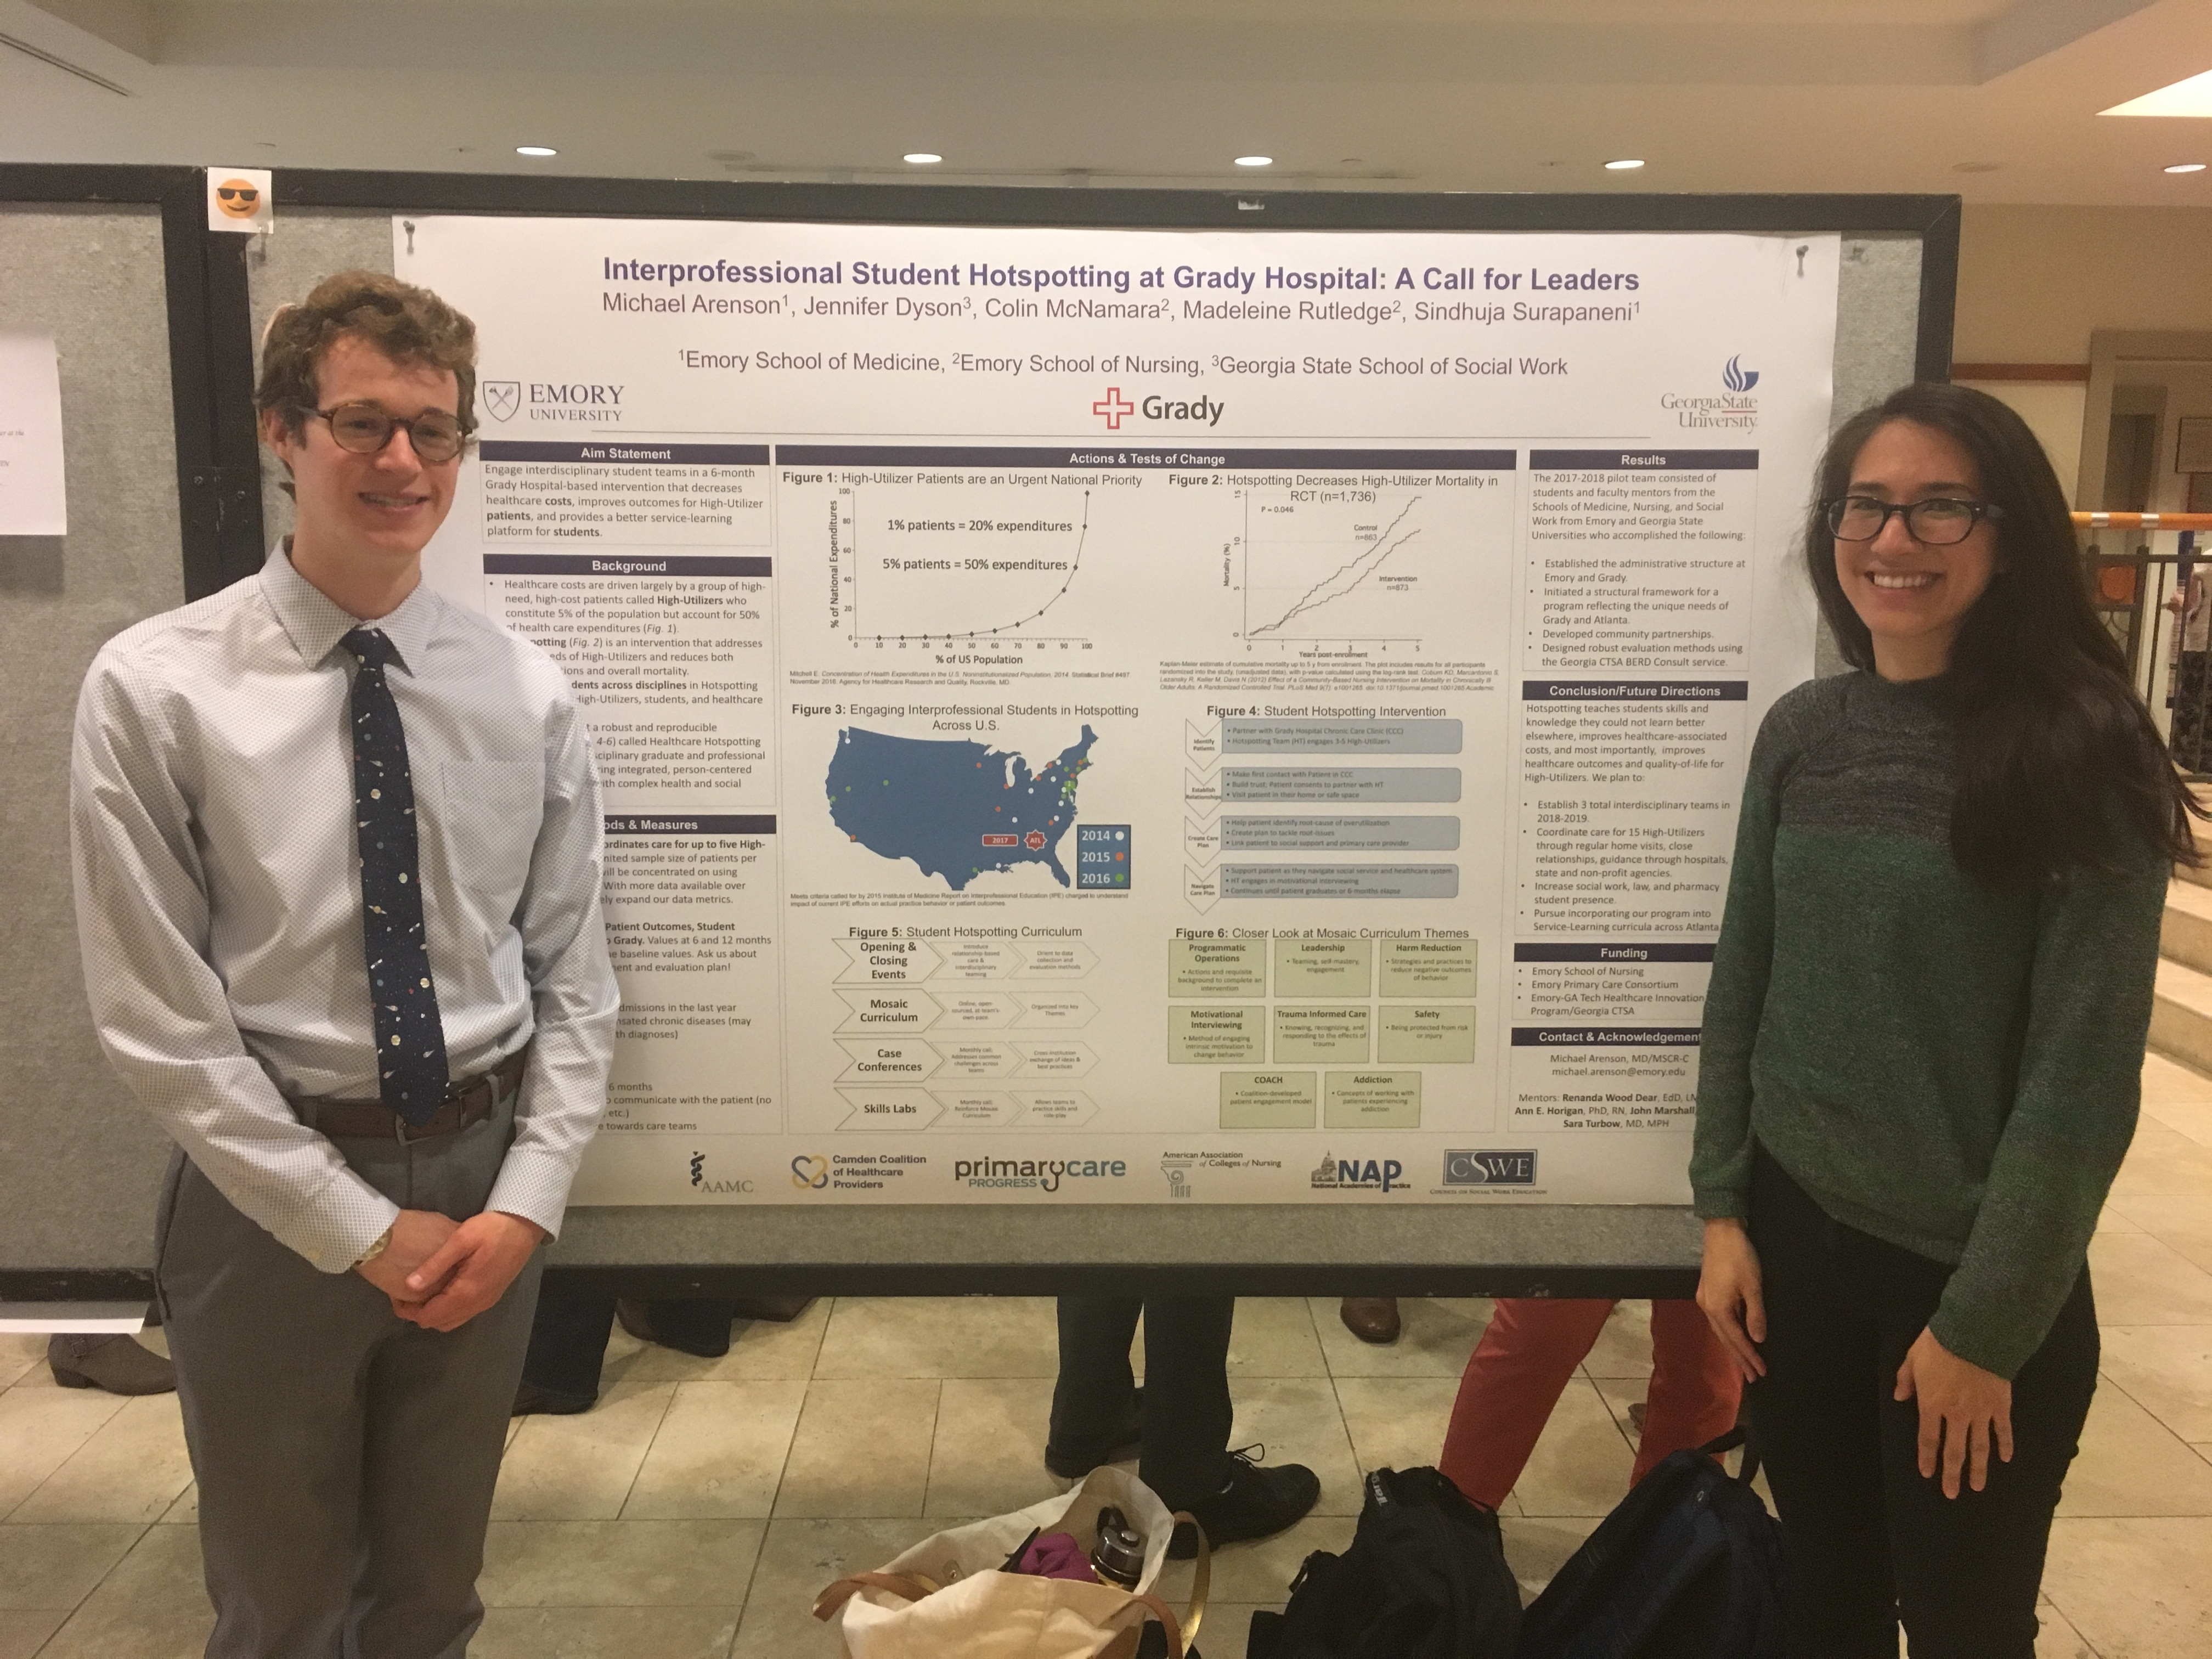 Caption: Colin McNamara BSN, RN and fellow nursing student Madeleine Rutledge (SON NP student) presenting the hotspotting project at Nell Hodgson Woodruff School of Nursing Student Scholars Day. This poster was also presented at the 11th Emory Quality Conference by Georgia CTSA MSCR scholar Michael Arenson (M3, MSCR), at the 5th Annual Health Services Research Day by Jennifer Dyson (Georgia State University MSW candidate), and at the Medical Student Poster Competition by Sindhuja Surapaneri (M3).